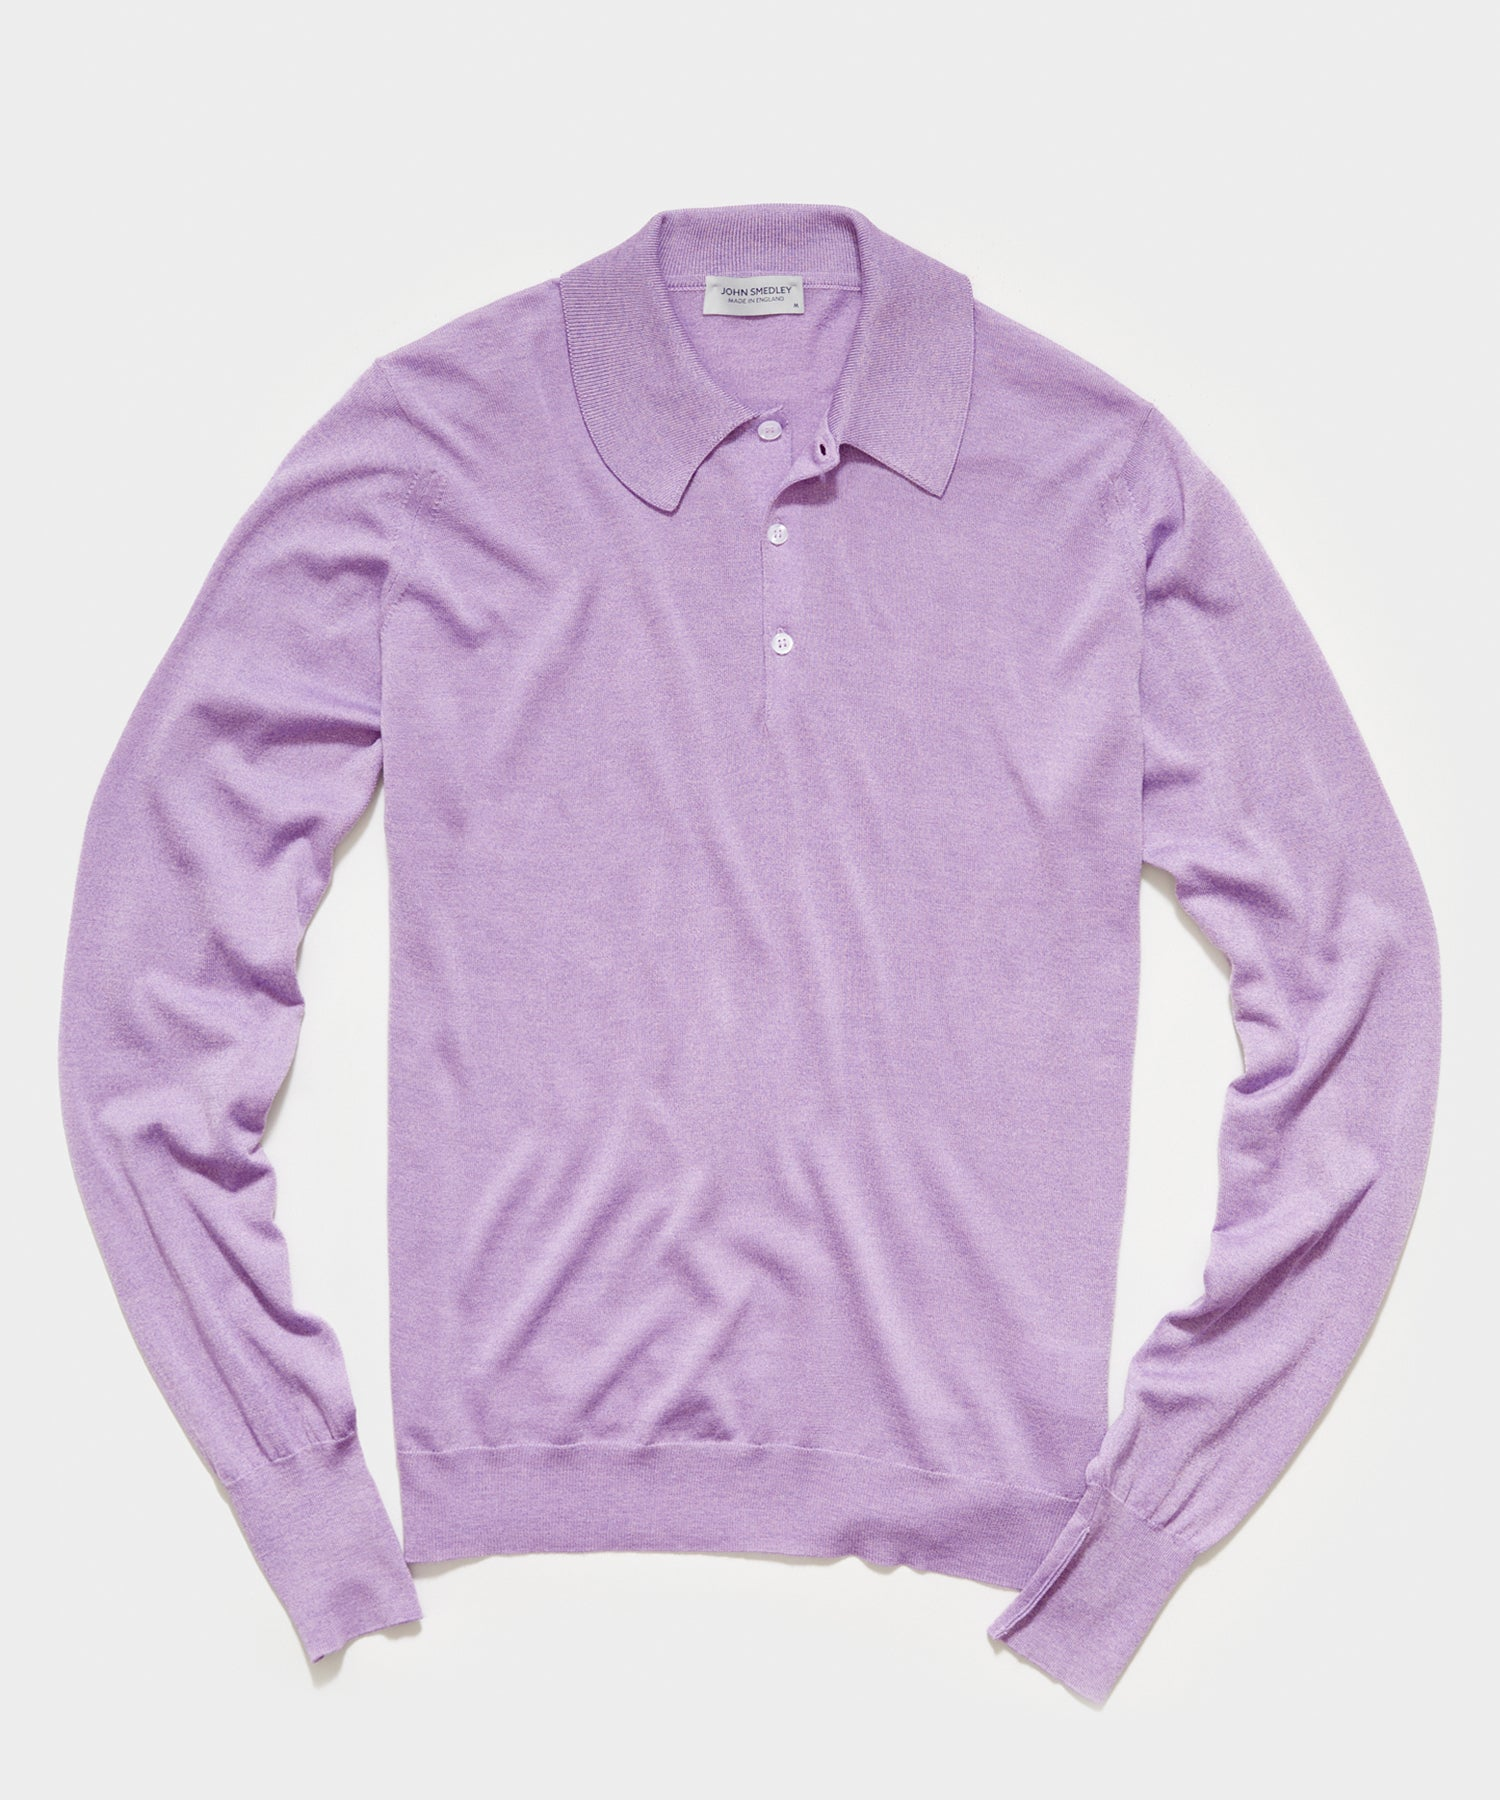 John Smedley Long Sleeve Easy Fit Merino Polo in Waterlily